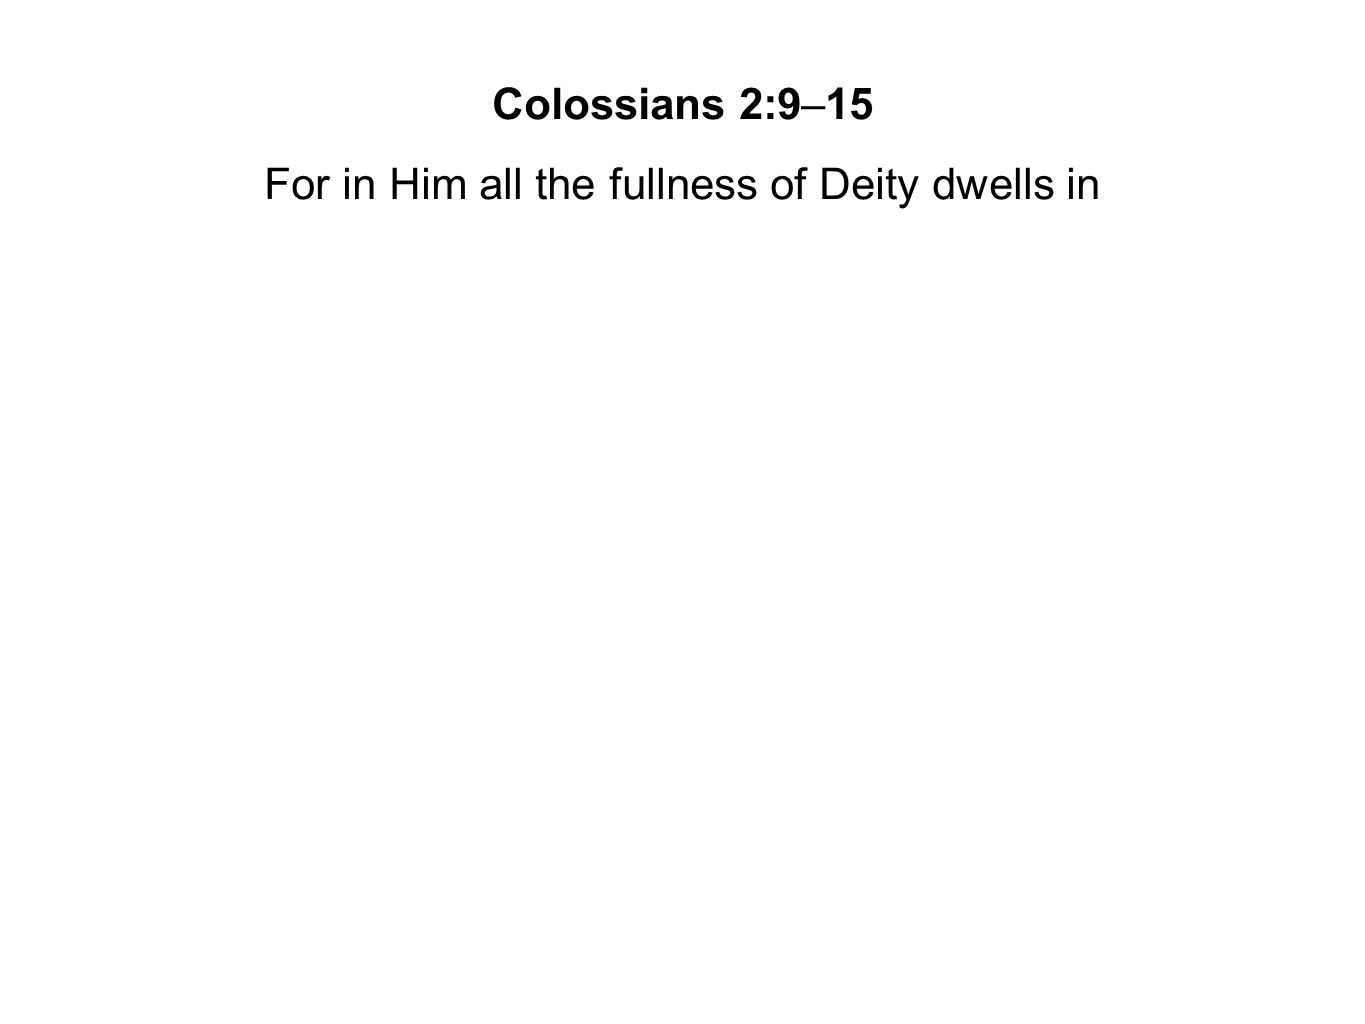 For in Him all the fullness of Deity dwells in